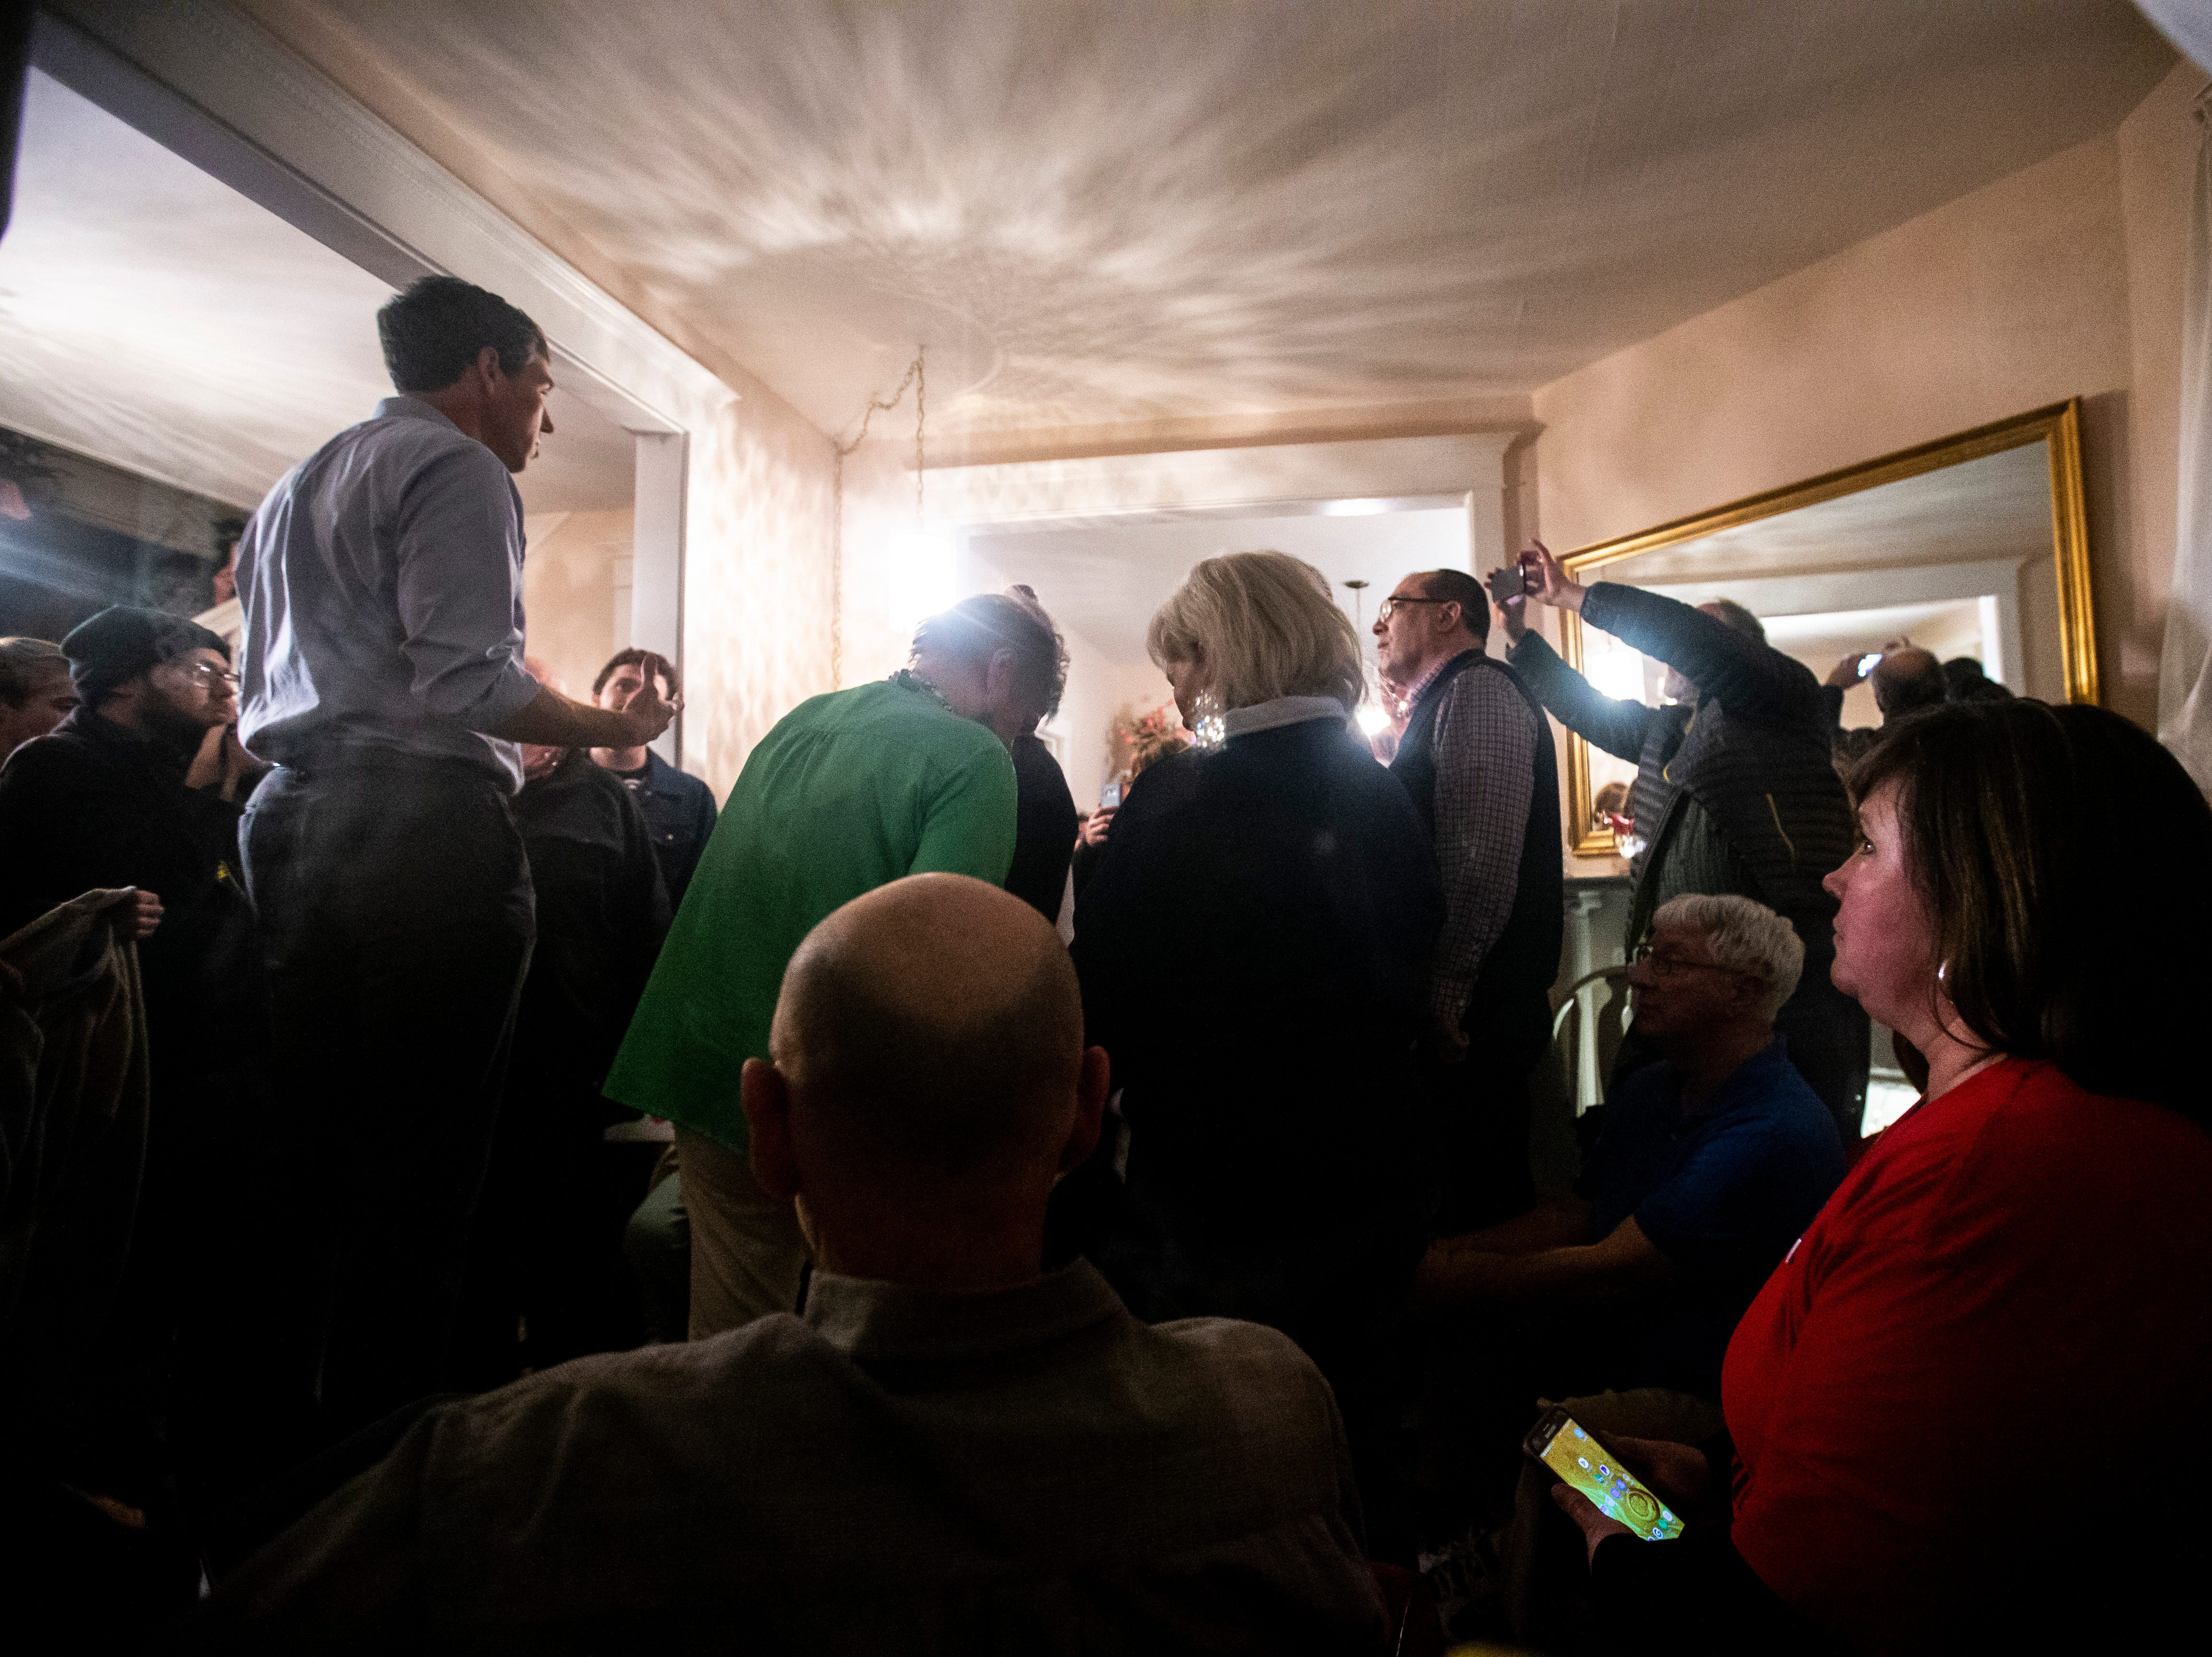 Democratic presidential candidate Beto O'Rourke, of Texas, speaks to a crowd at the end of his first day in the state since announcing his run, Thursday, March 14, 2019, at a home in Muscatine, Iowa.